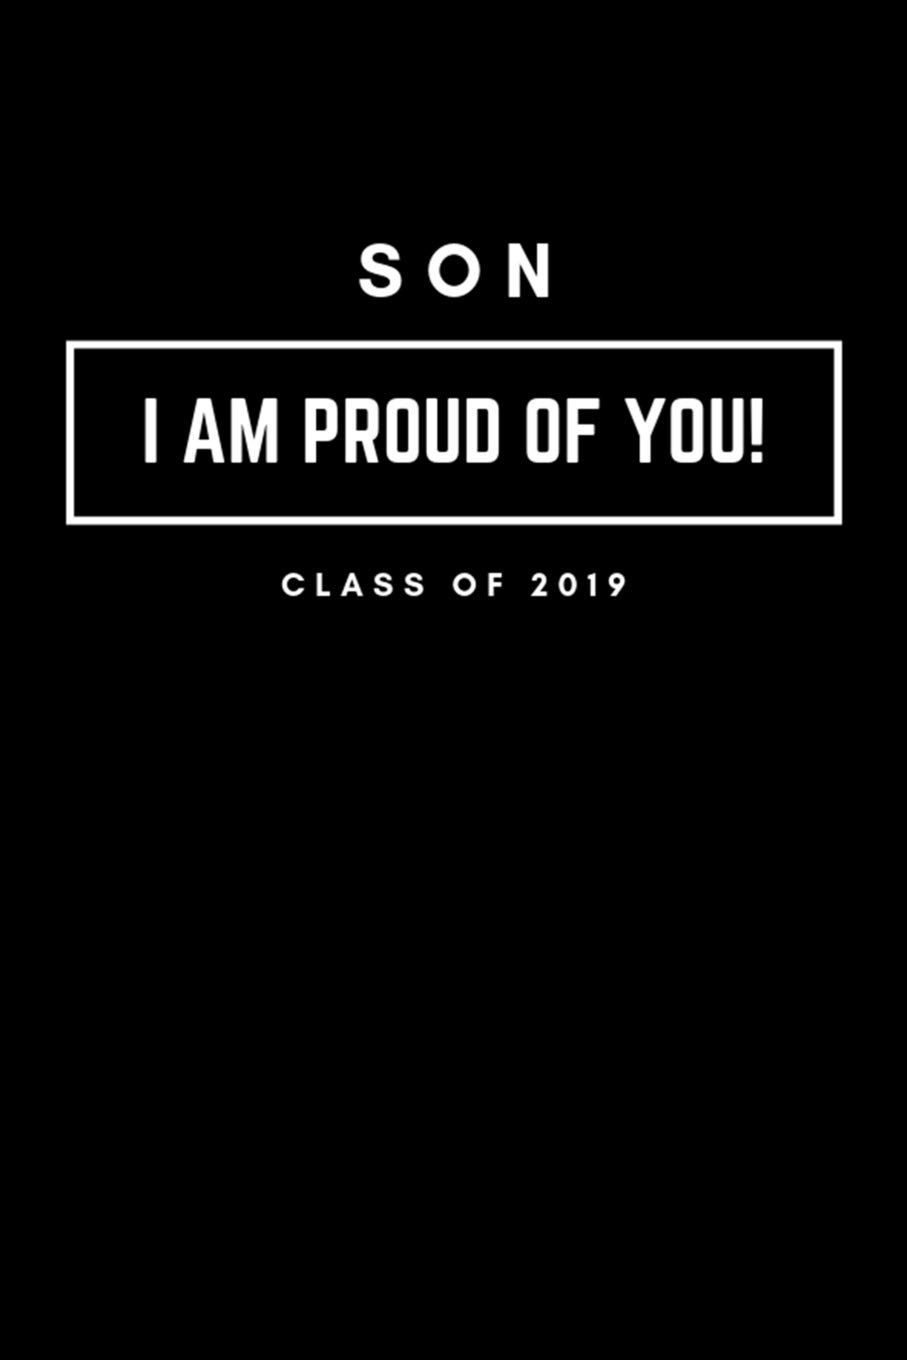 Amazon.com: Son I am Proud of You Class of 2019: Lined ...